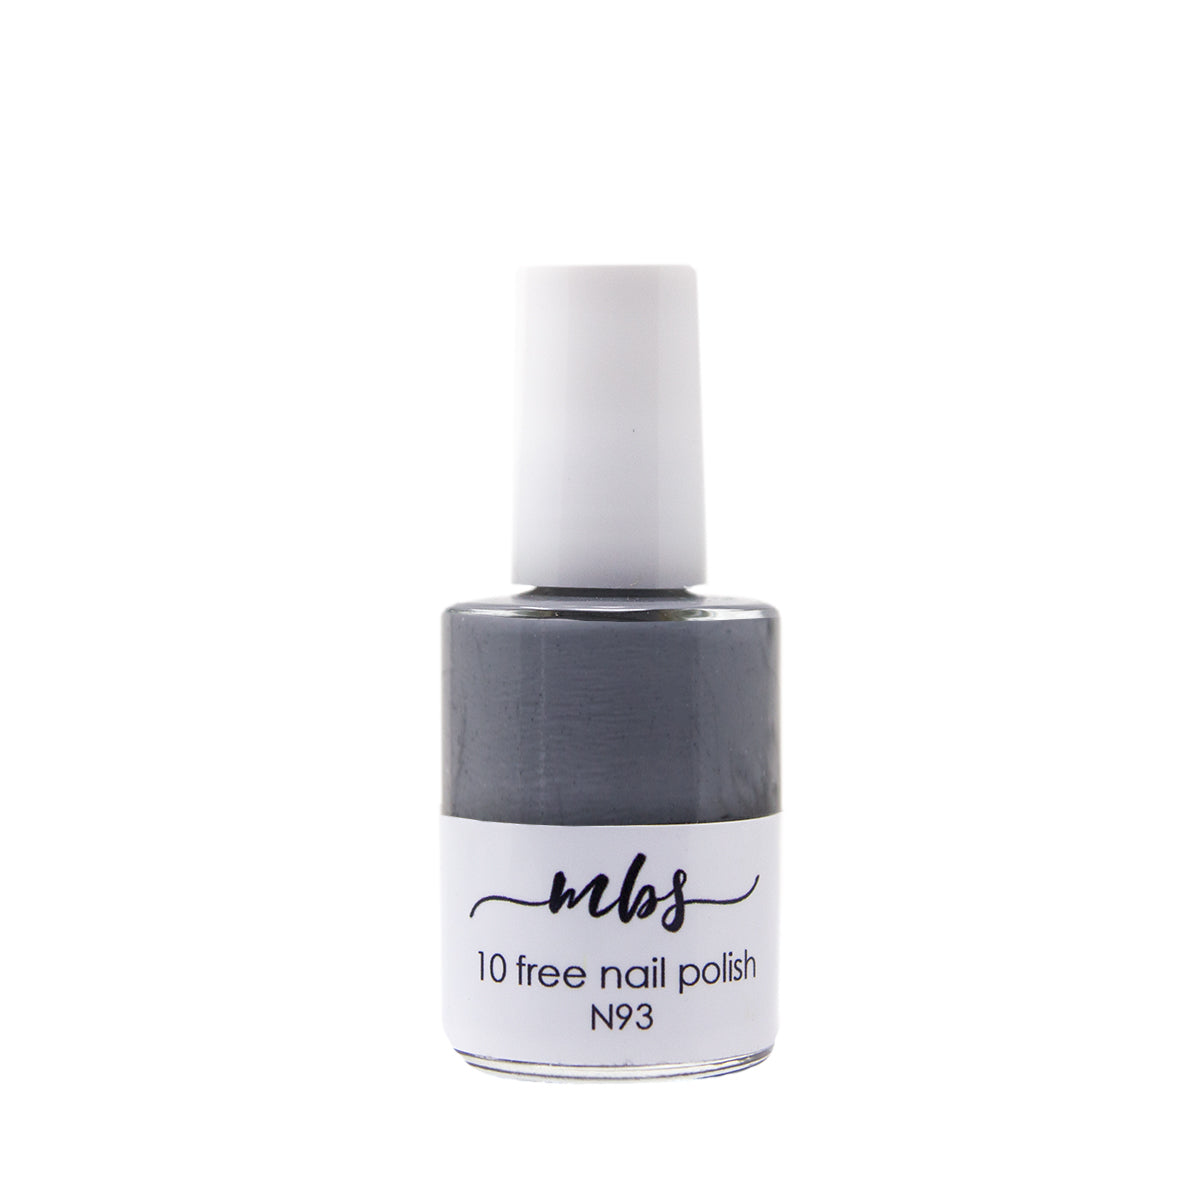 Nail Polish N93-Nail Polish-Morning Blossom Studio